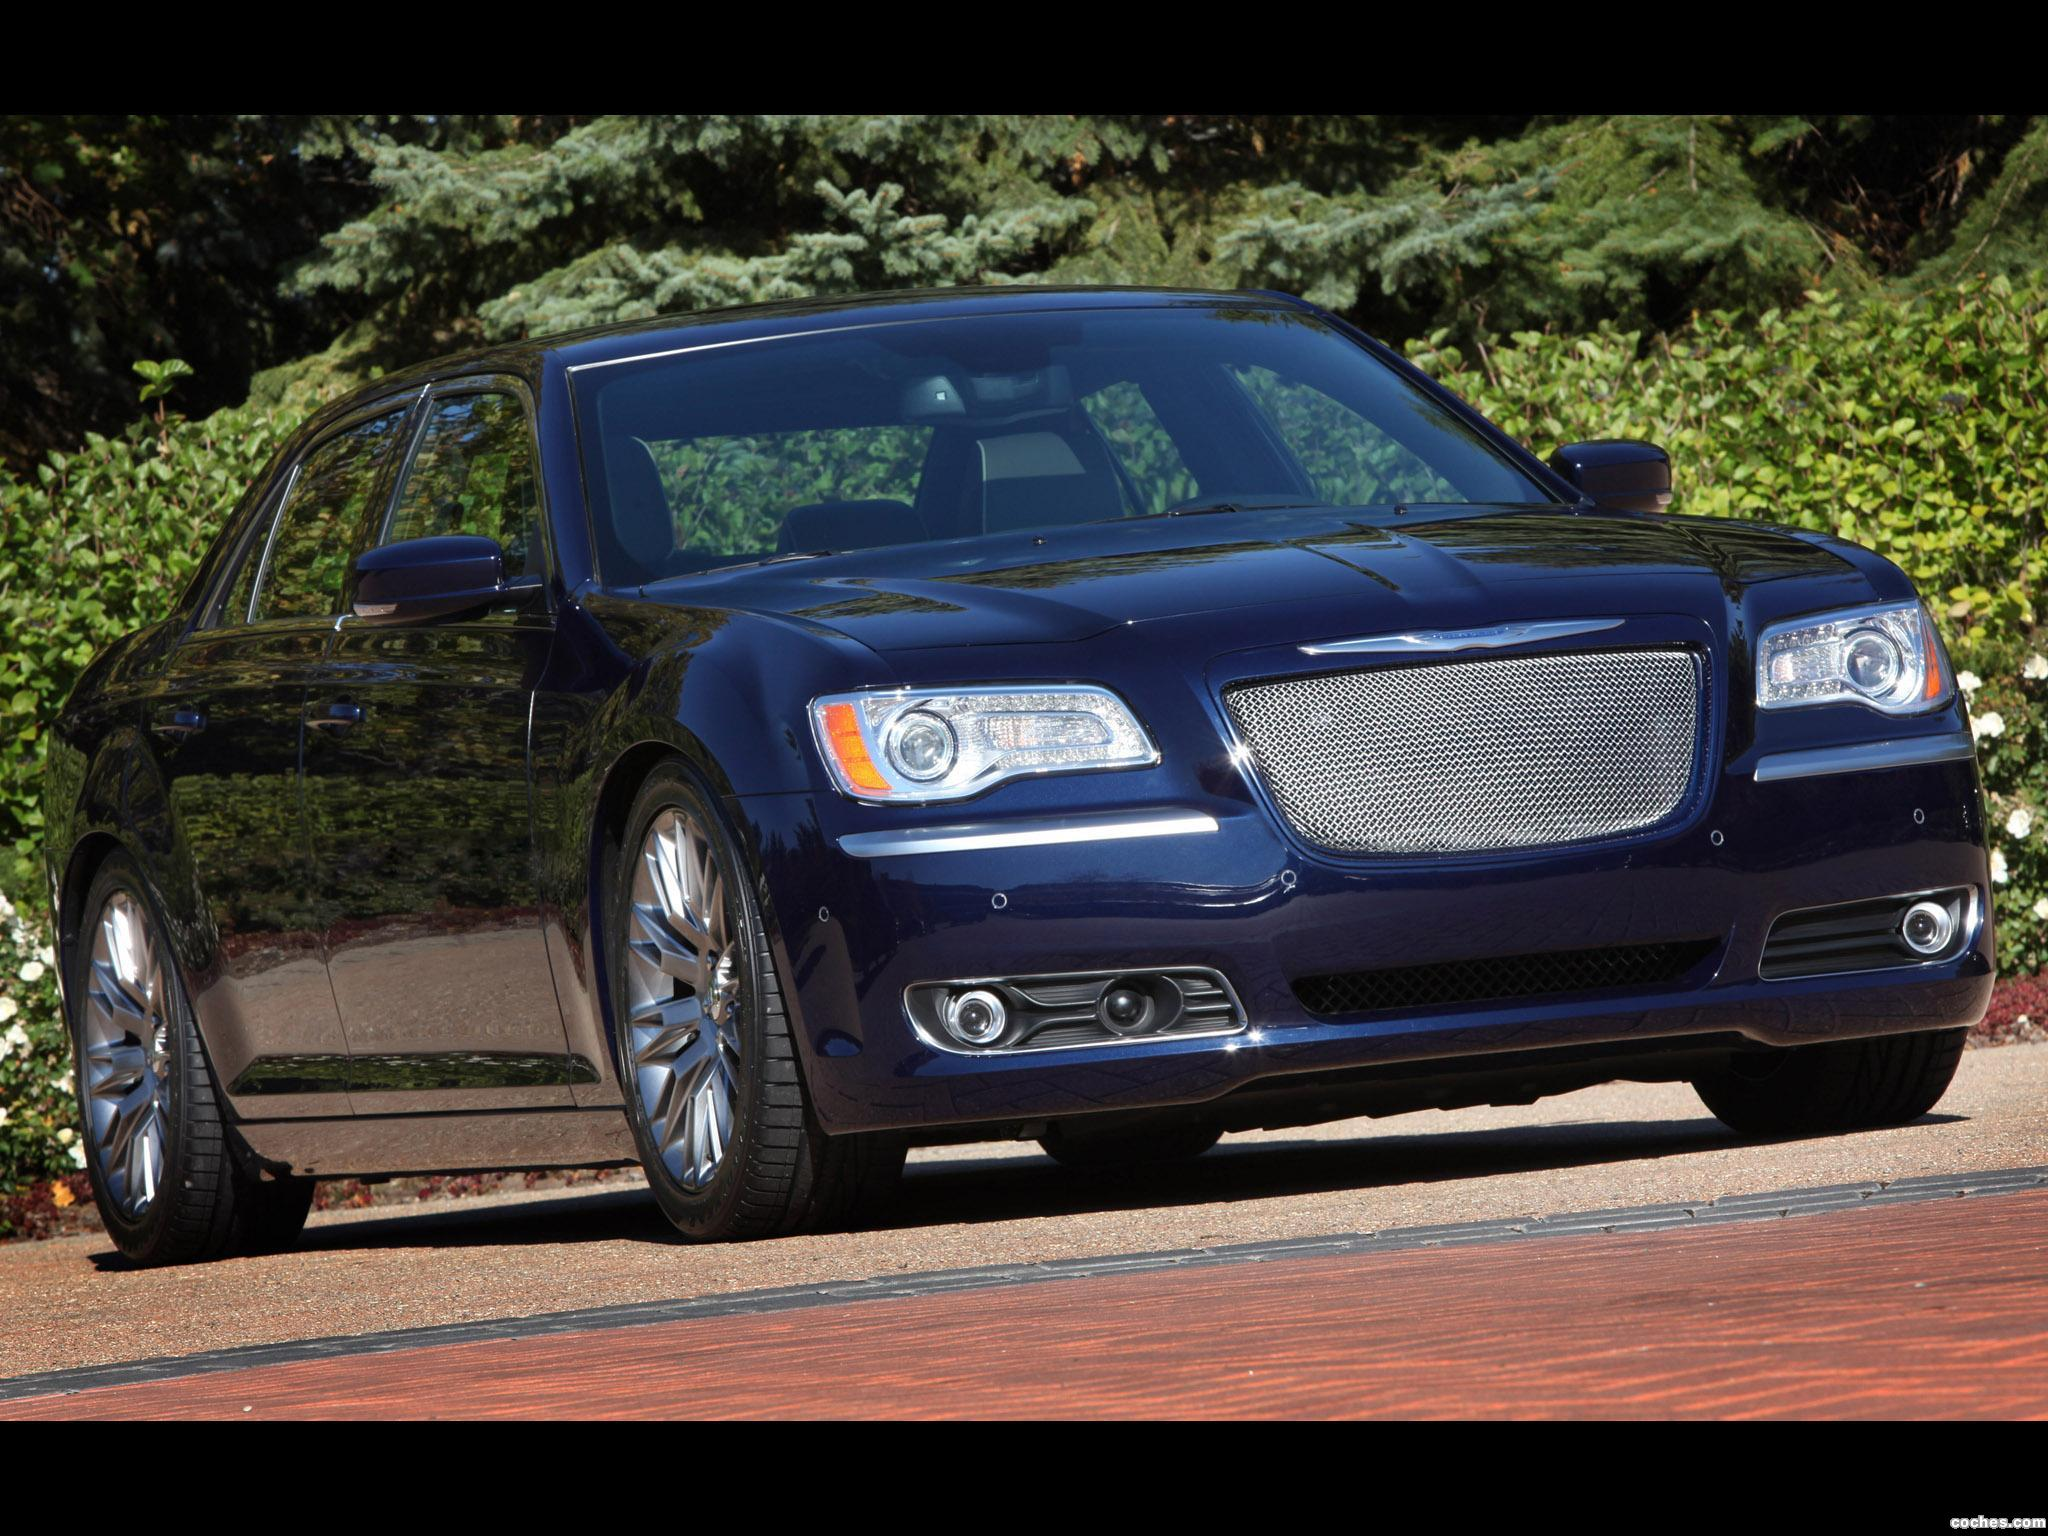 Foto 0 de Chrysler 300 Luxury Mopar 2012